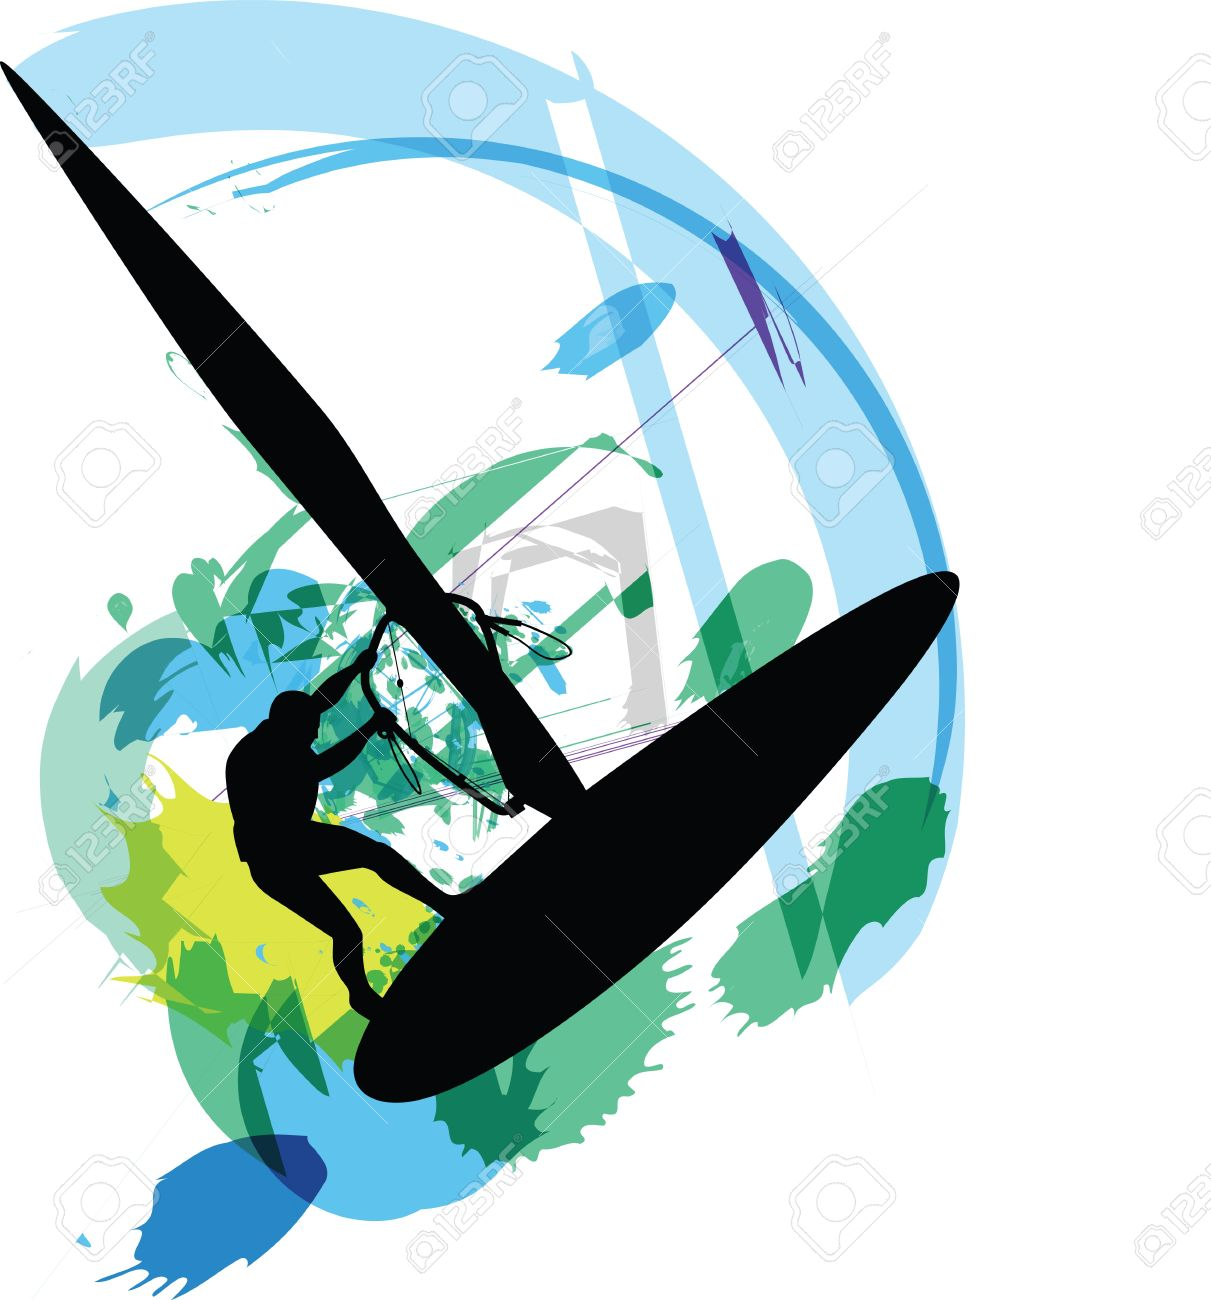 Wind Surf Illustration Royalty Free Cliparts, Vectors, And Stock.